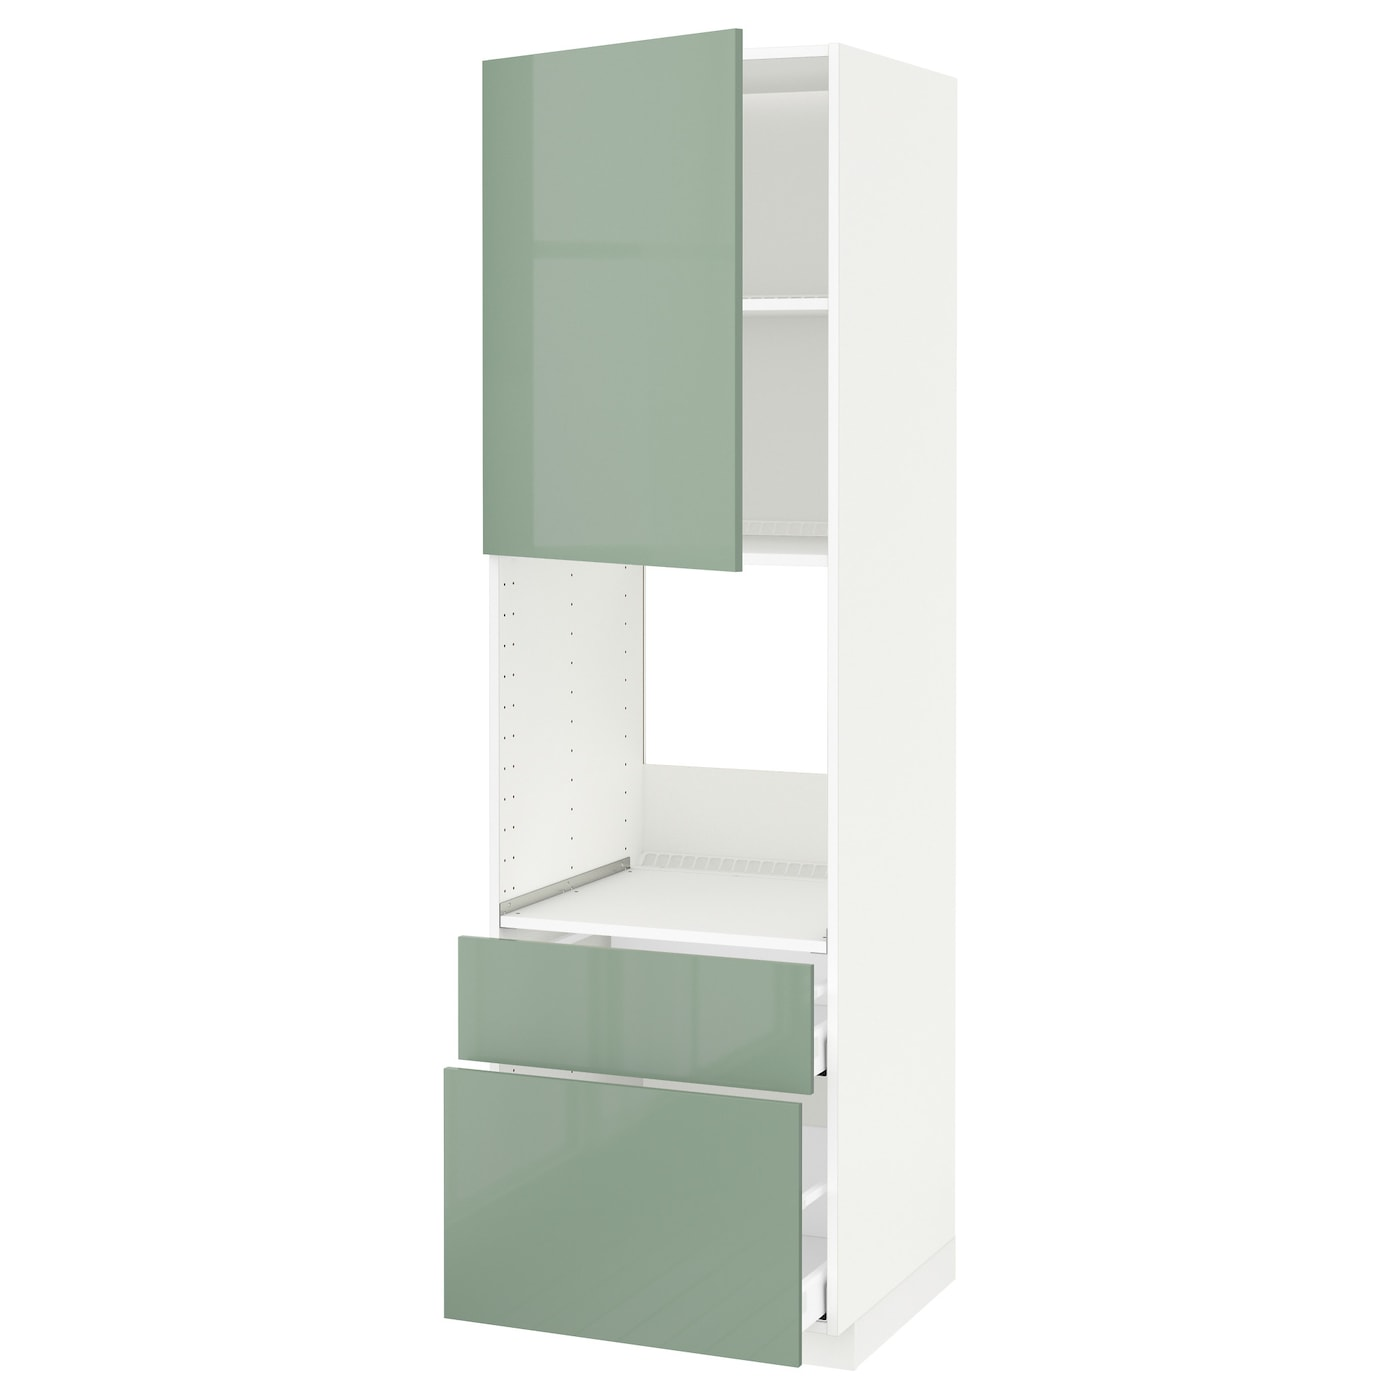 metod maximera hi cab f ov w dr 2 frnt 1 m 1 h drw white kallarp light green 60x60x200 cm ikea. Black Bedroom Furniture Sets. Home Design Ideas